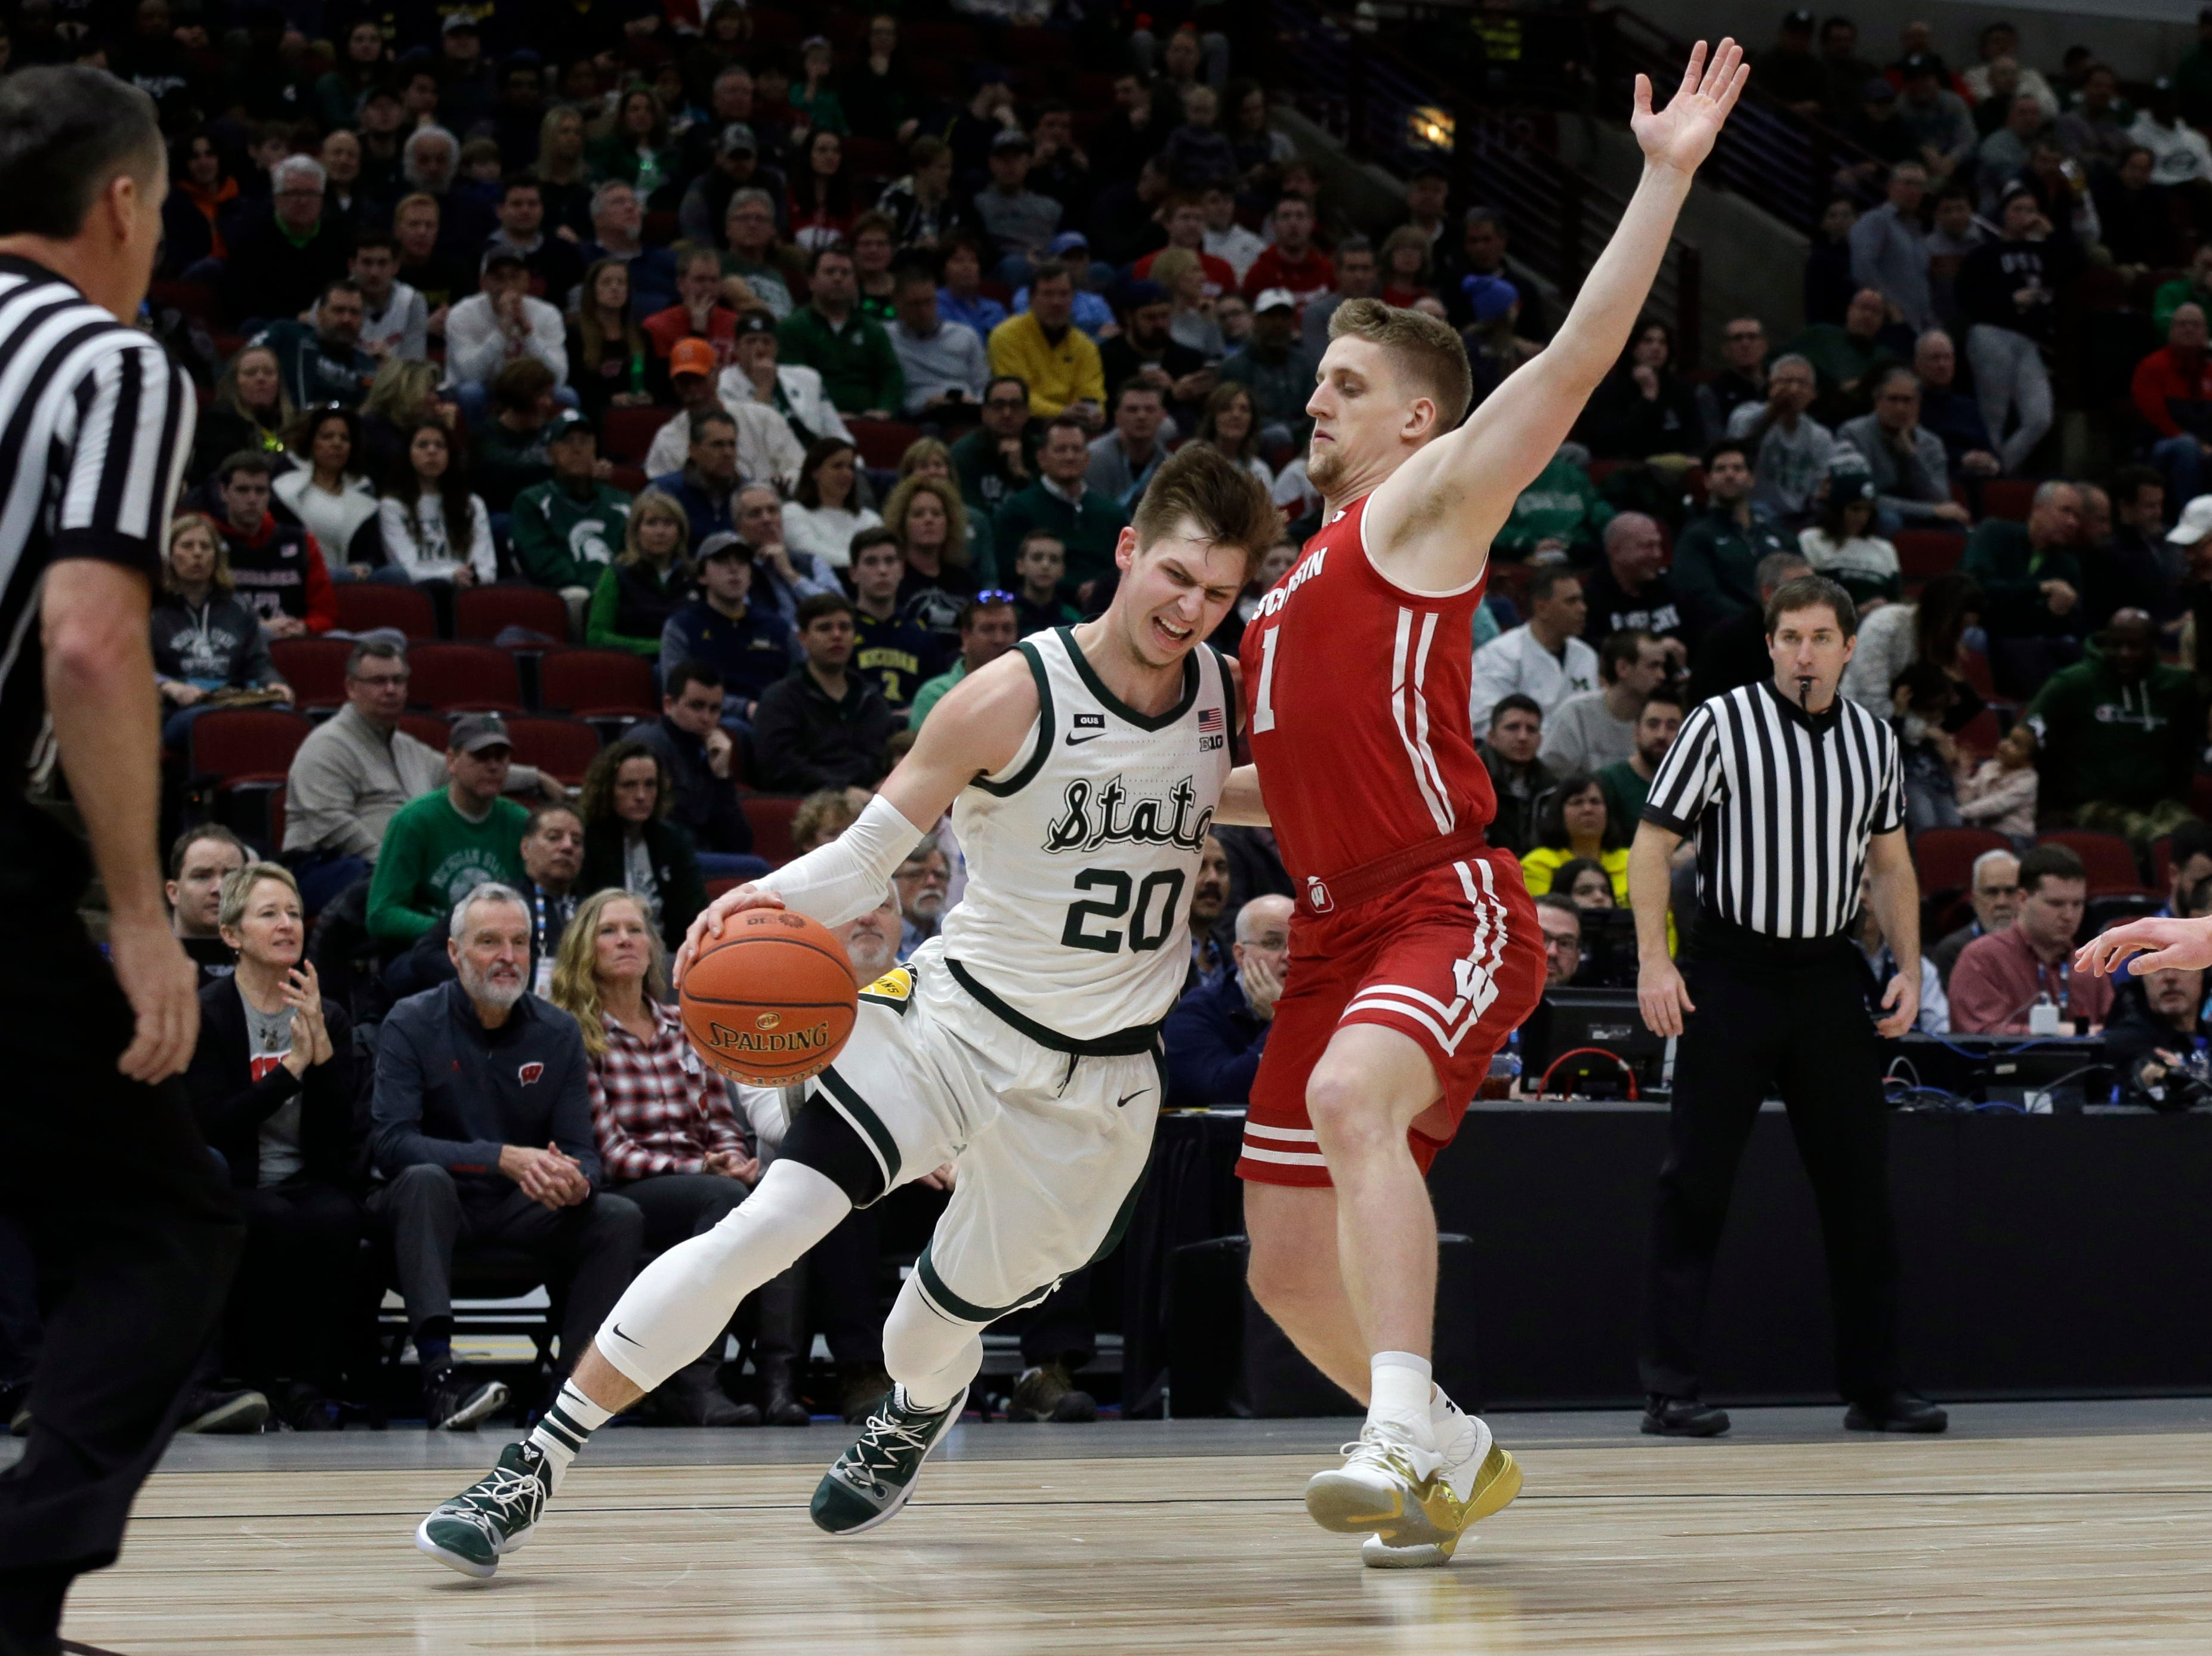 Michigan State's Matt McQuaid (20) drives against Wisconsin's Brevin Pritzl (1) during the first half of an NCAA college basketball game in the semifinals of the Big Ten Conference tournament, Saturday, March 16, 2019, in Chicago.